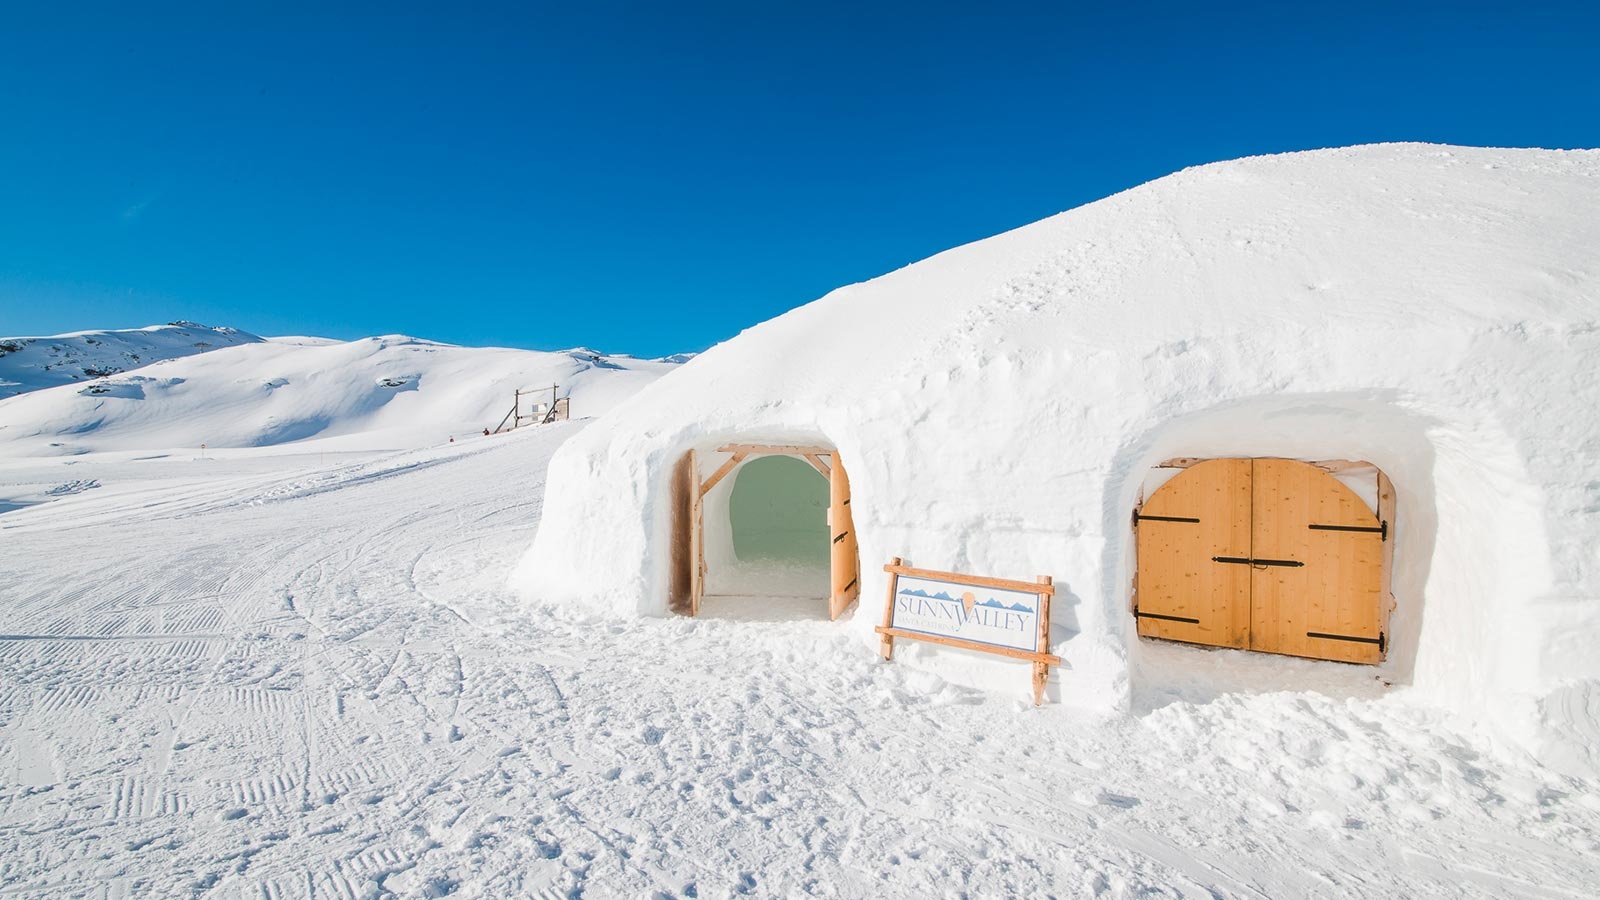 Sleep in an igloo surrounded by a wonderful landscape